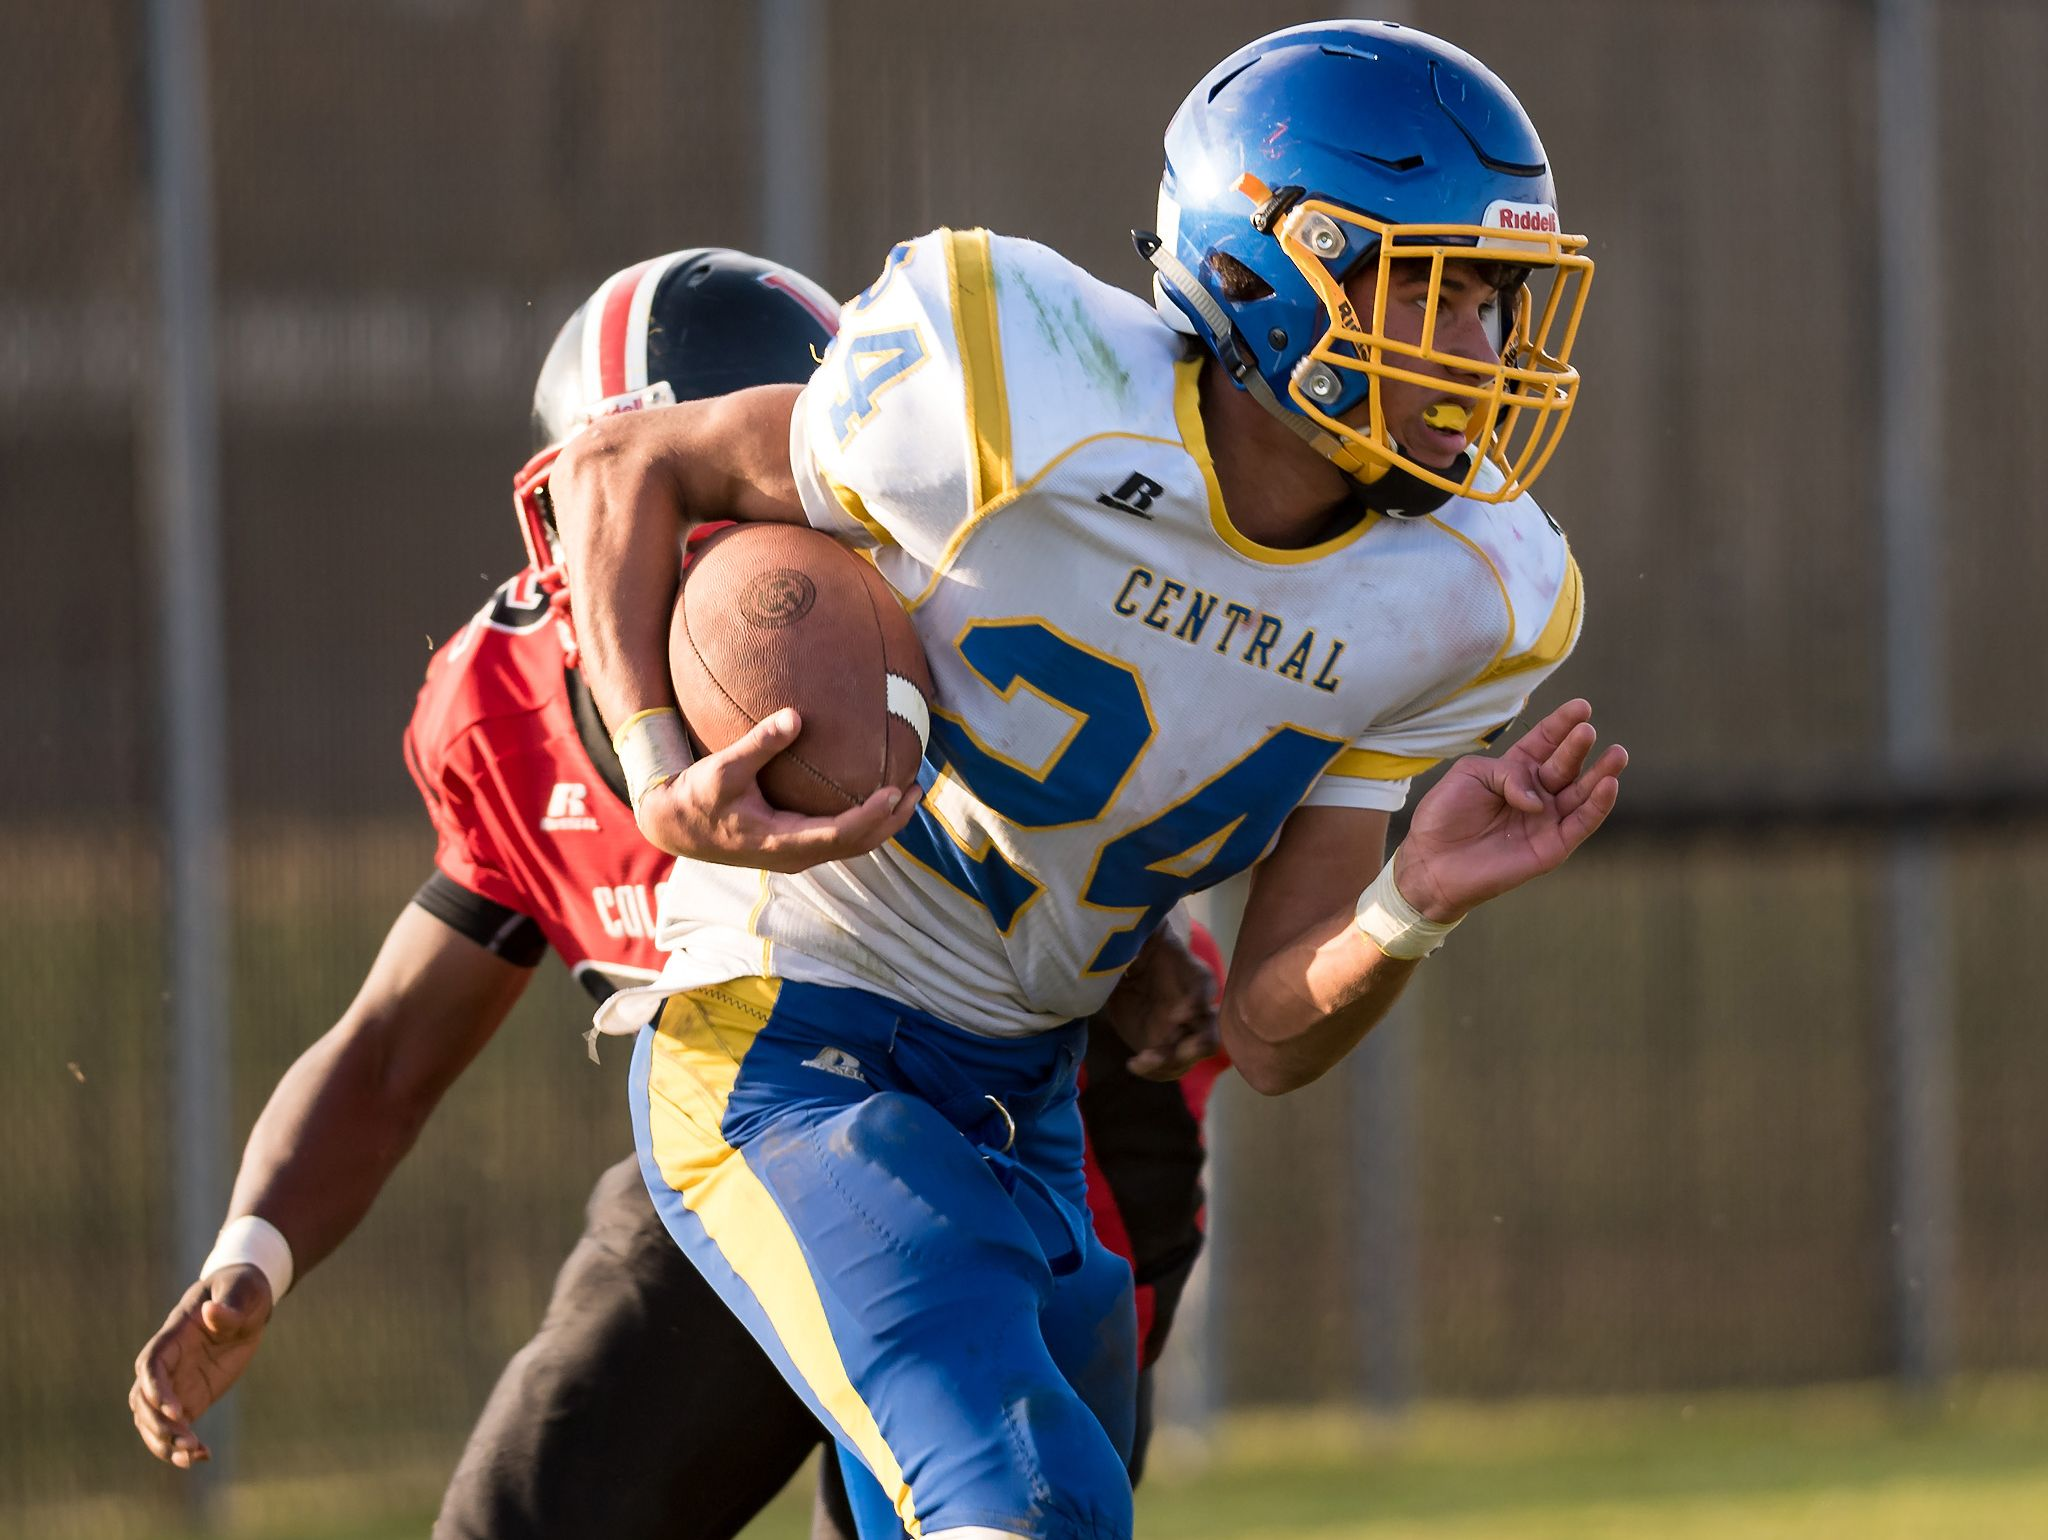 Isaiah Barnes of Sussex Central carries the ball as Sussex Central plays at William Penn in the opening round of DIAA Division II playoffs.